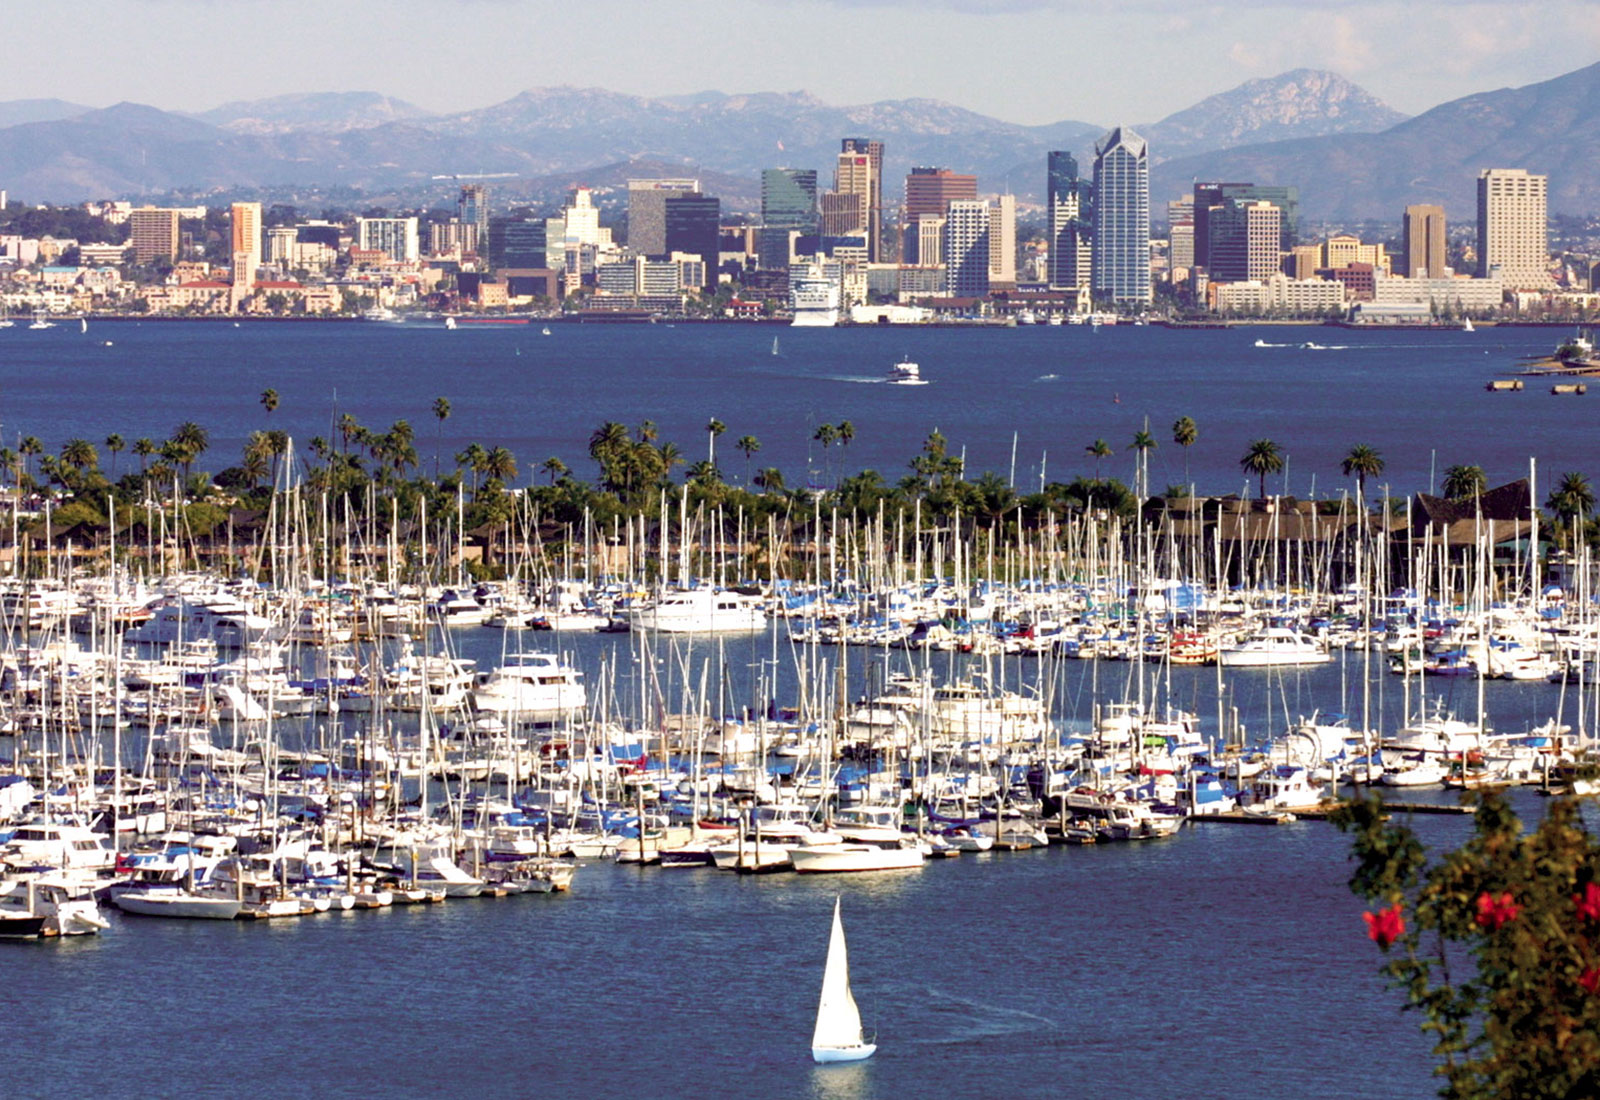 San Diego Harbor Cruises Boat Tours Amp Whale Watching